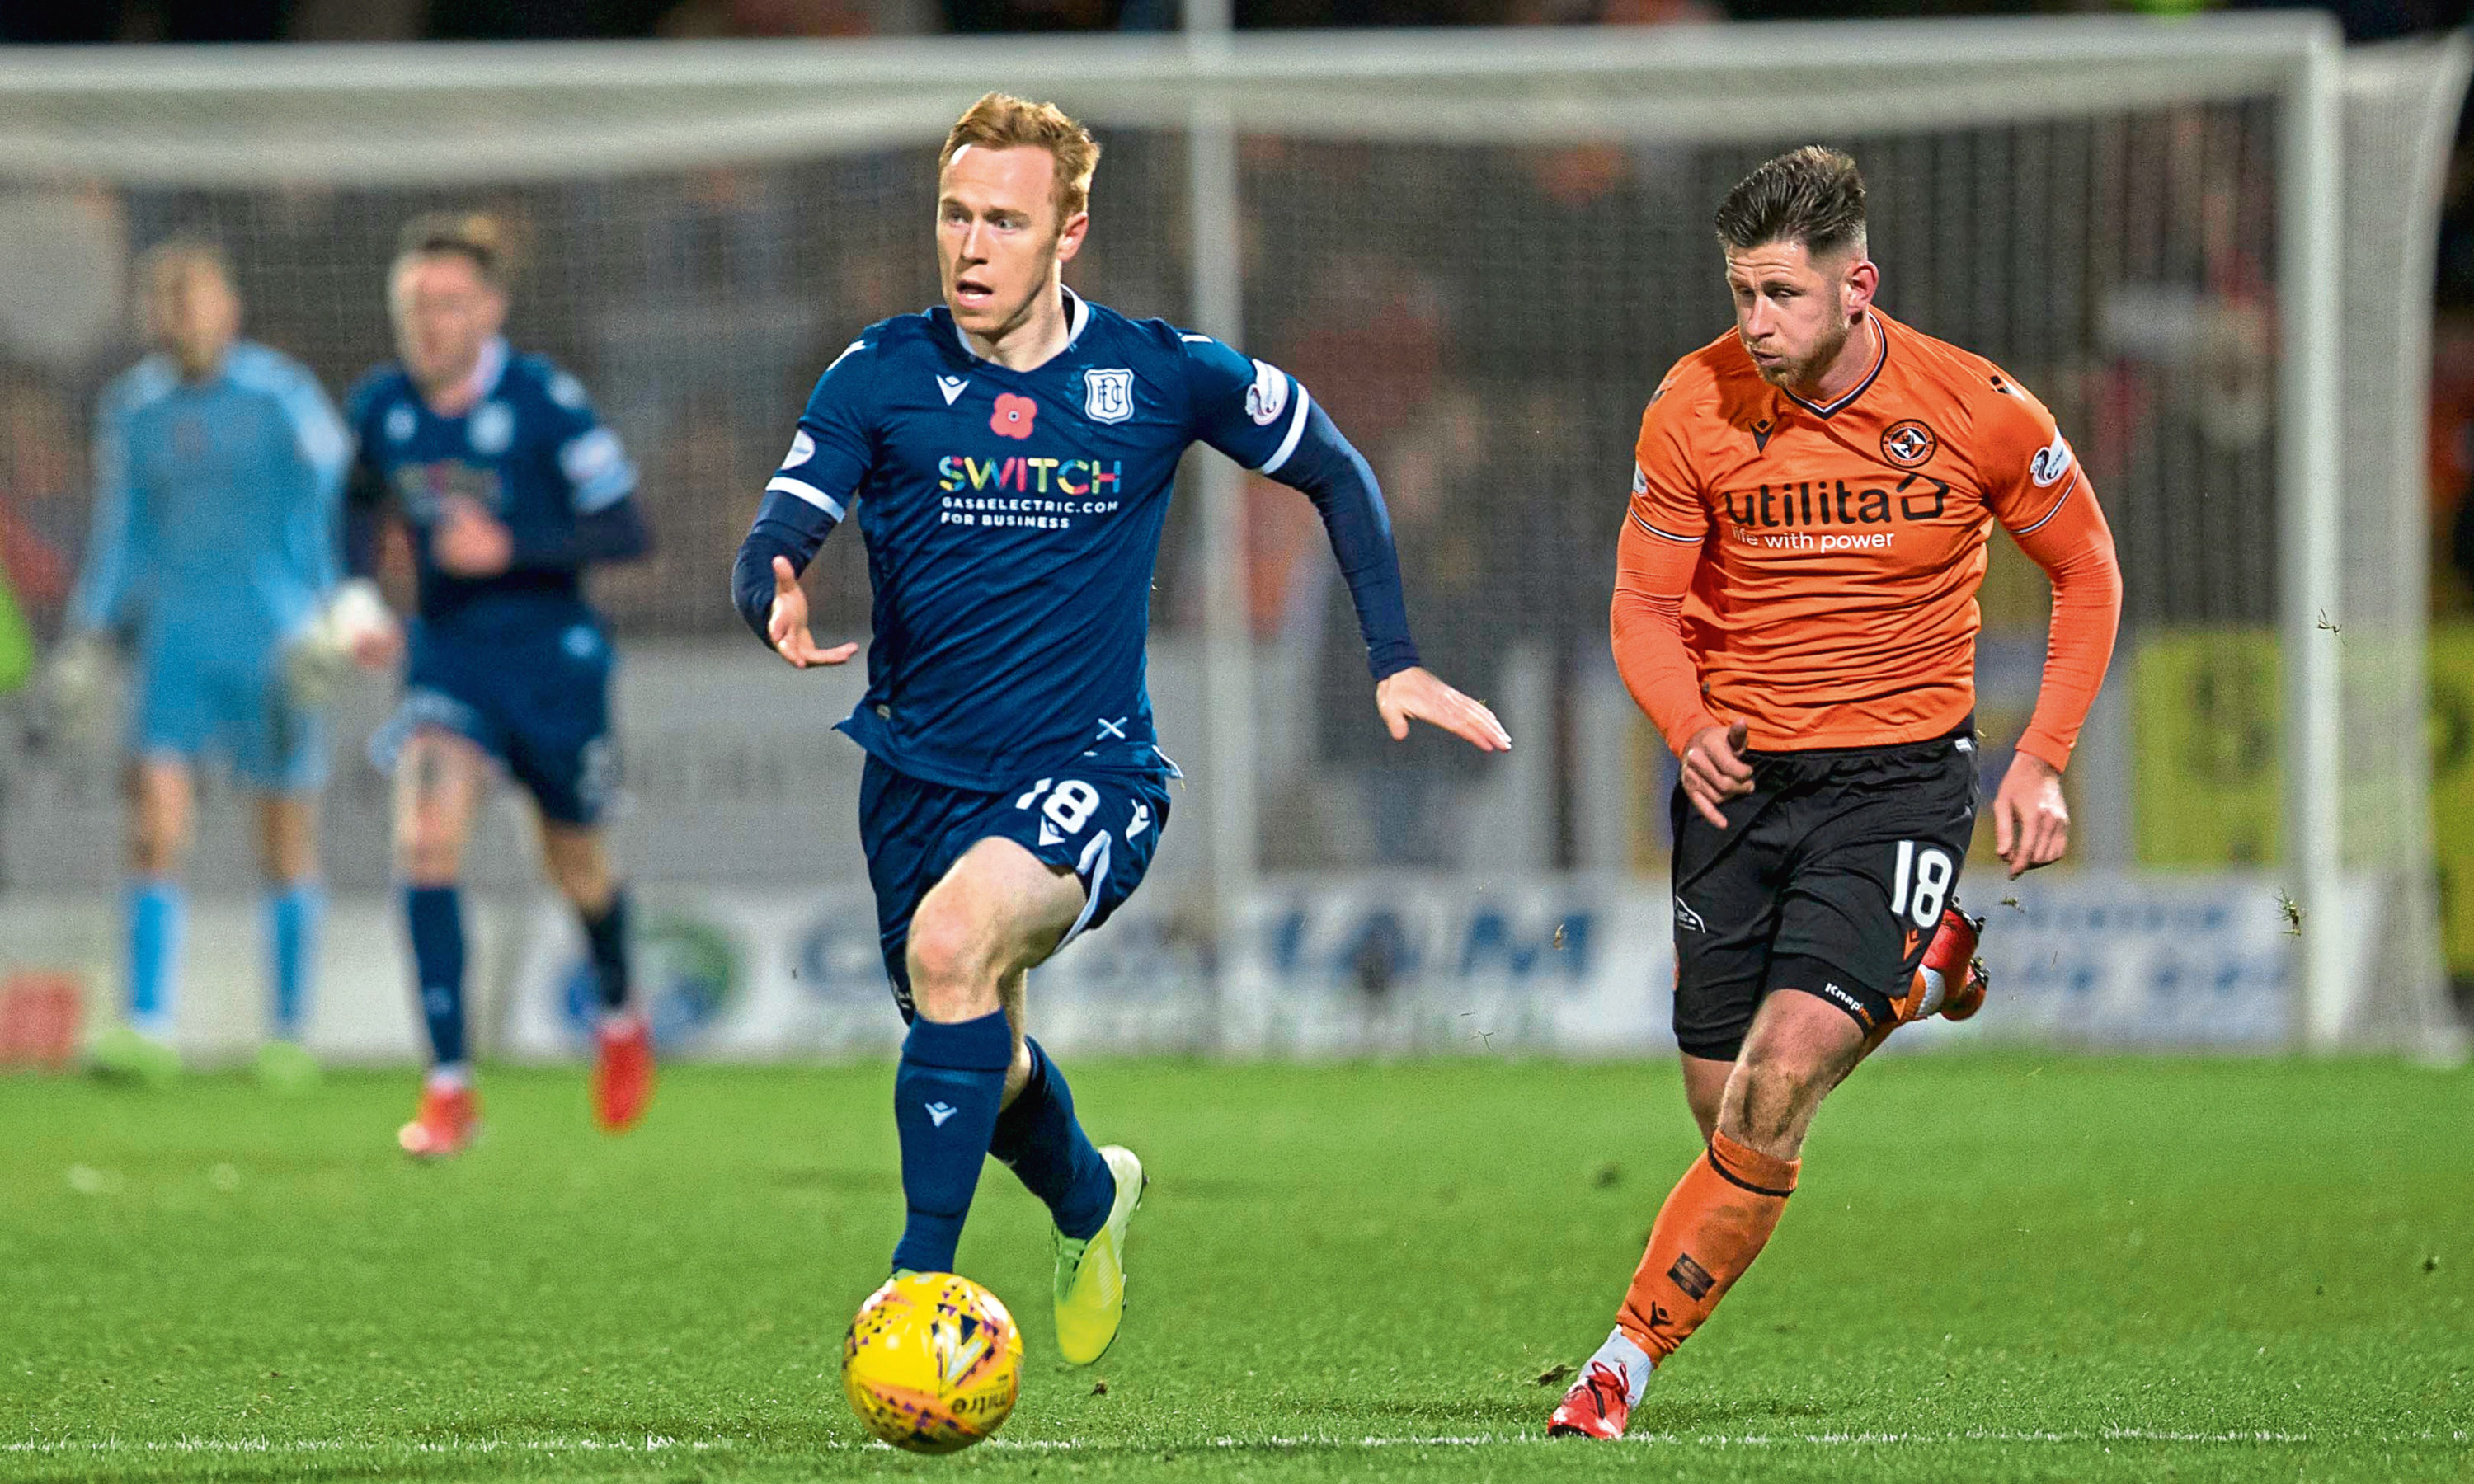 Johnson on the ball against Dundee United at Dens on Friday.